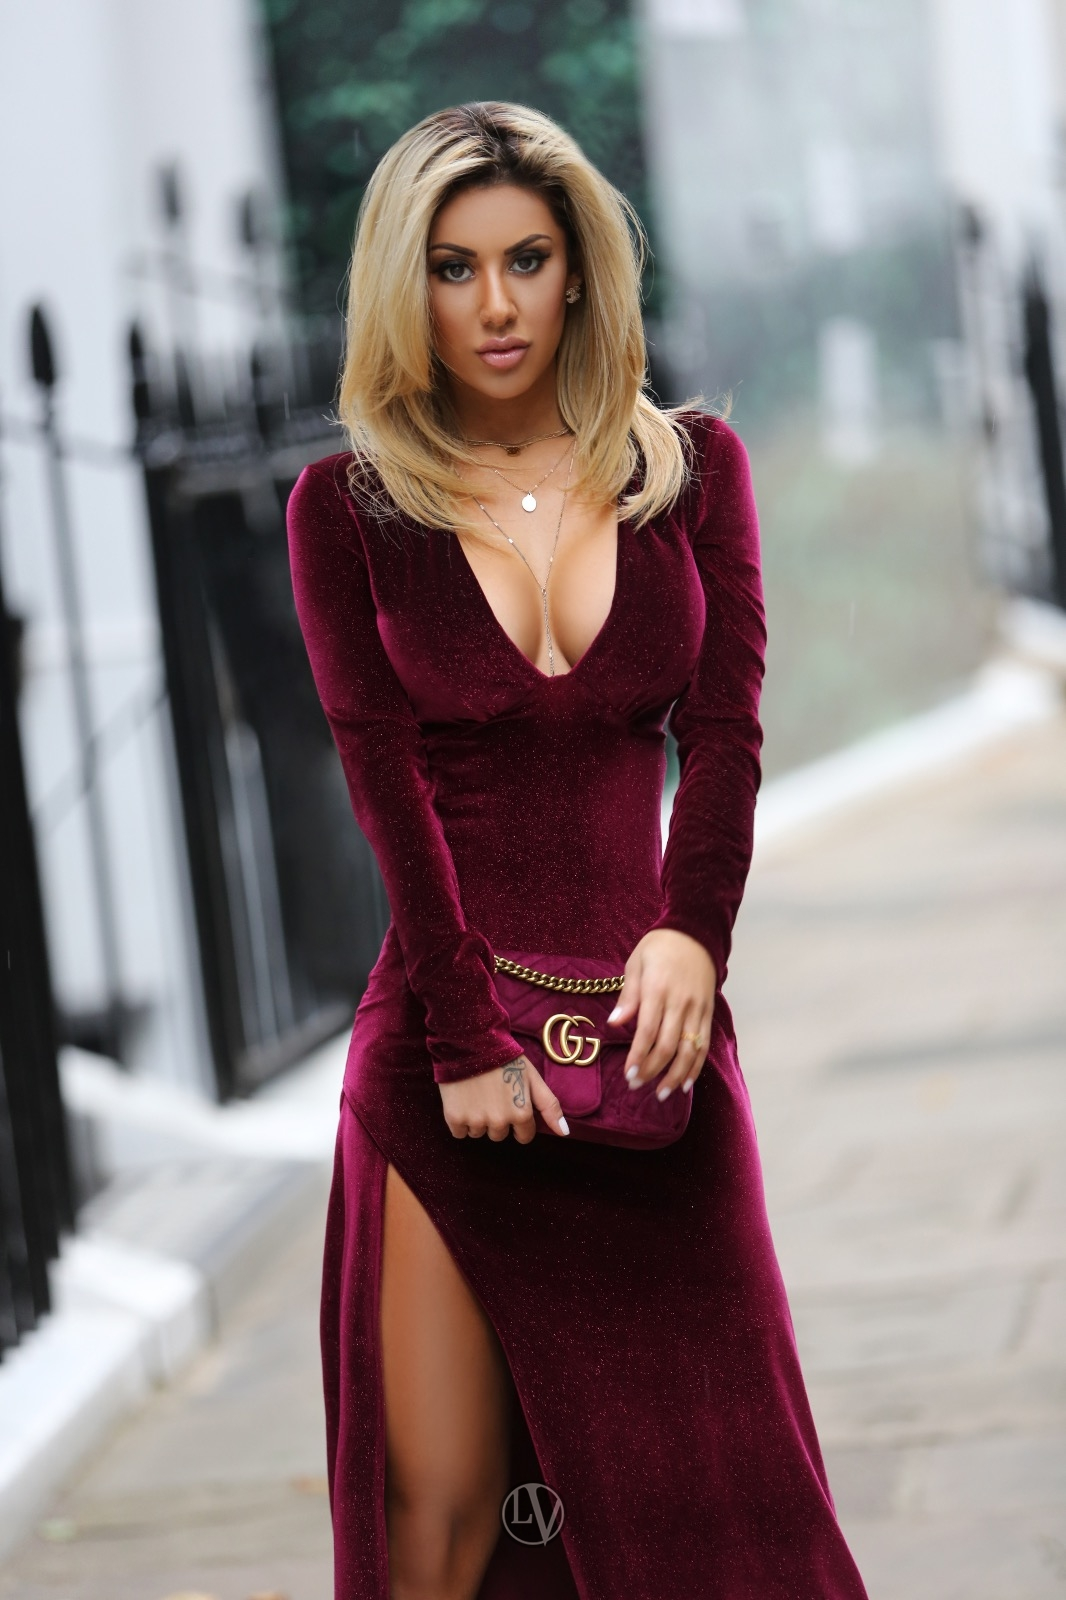 escort london bayswater